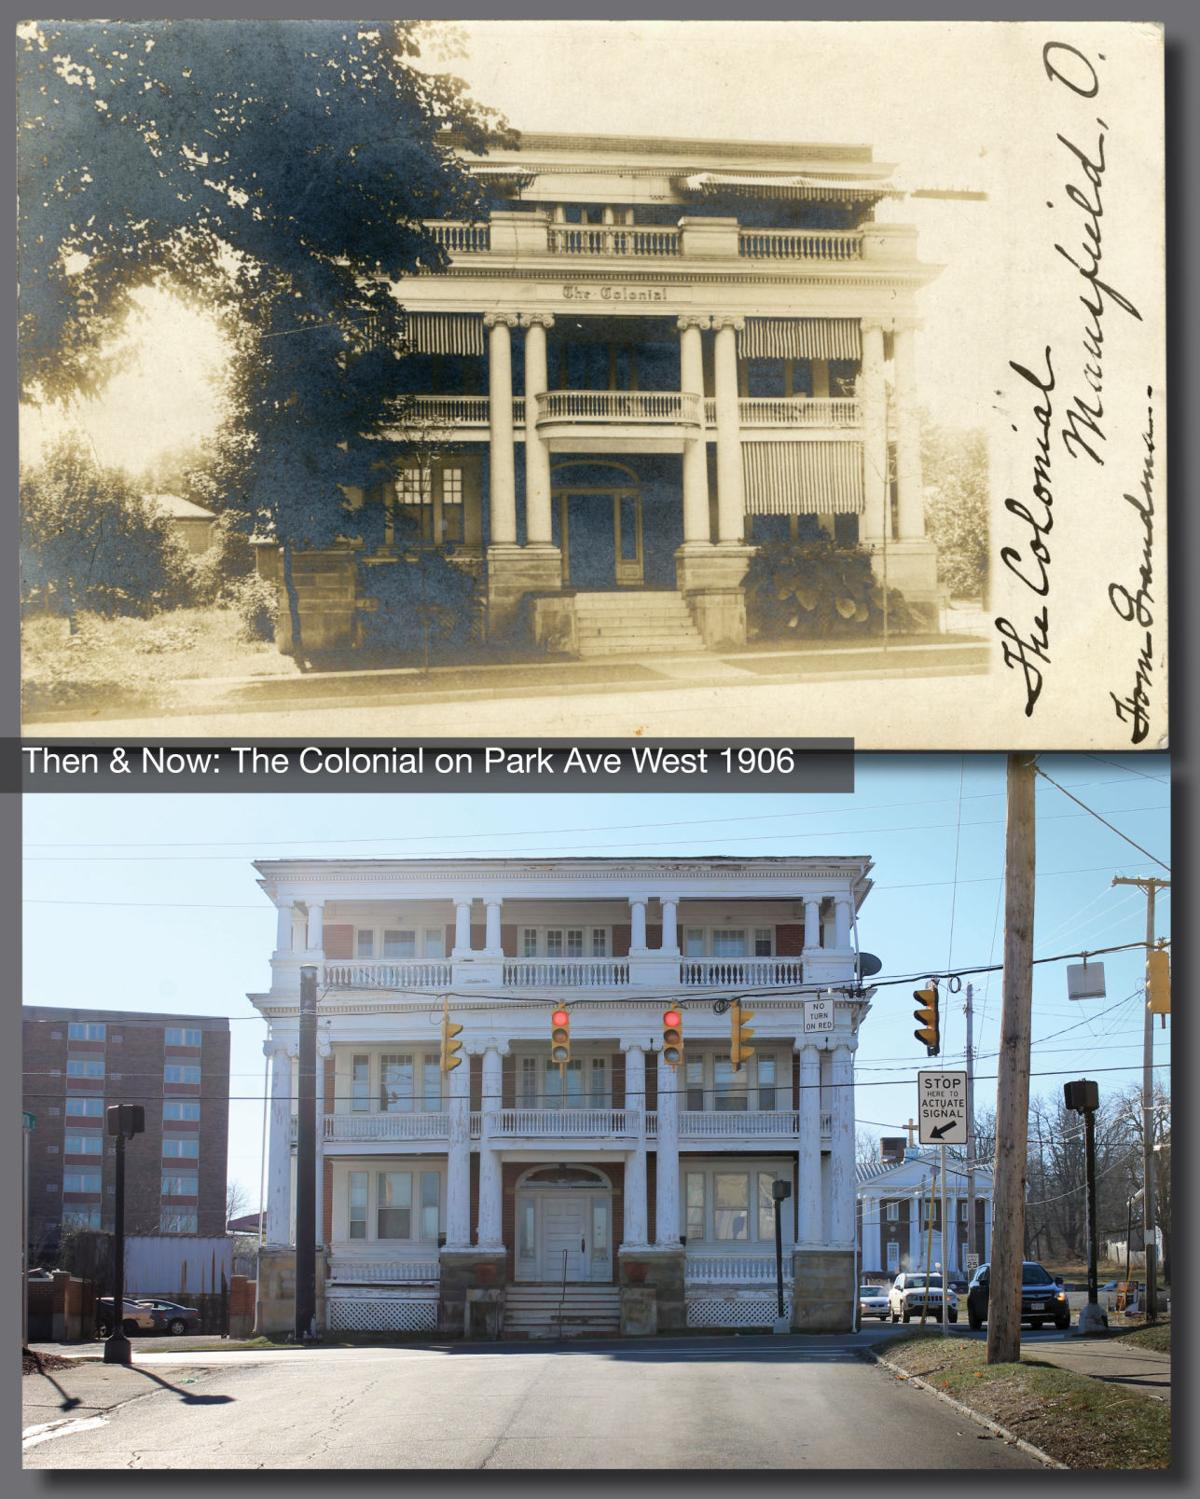 Then & Now: The Colonial